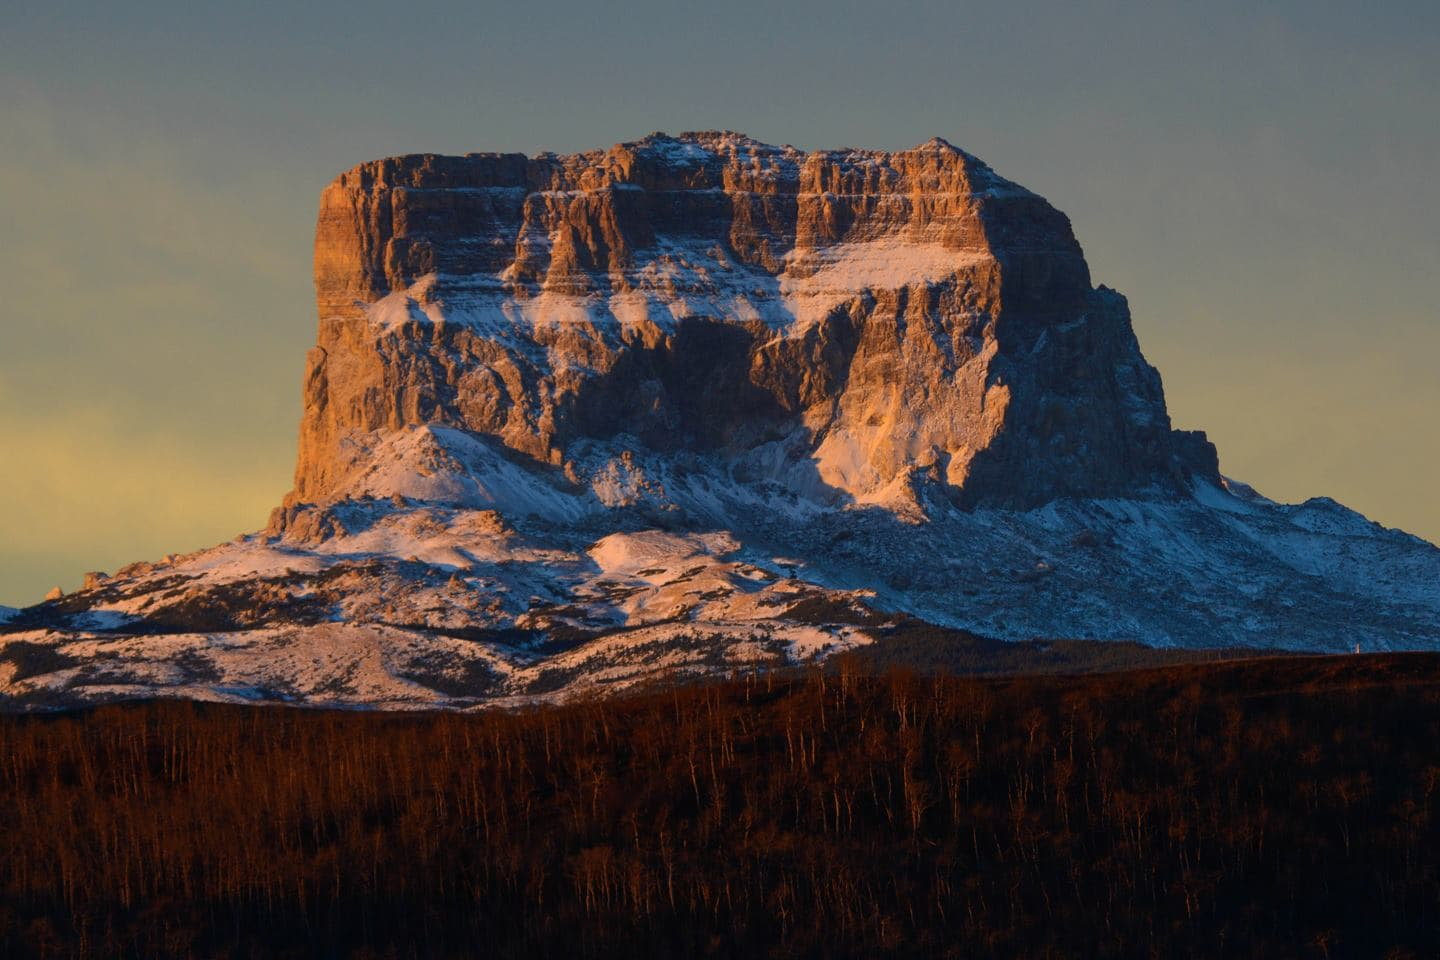 Chief Mountain - Sacred Mountain to the Blackfeet Nations, straddling the US-Canada border